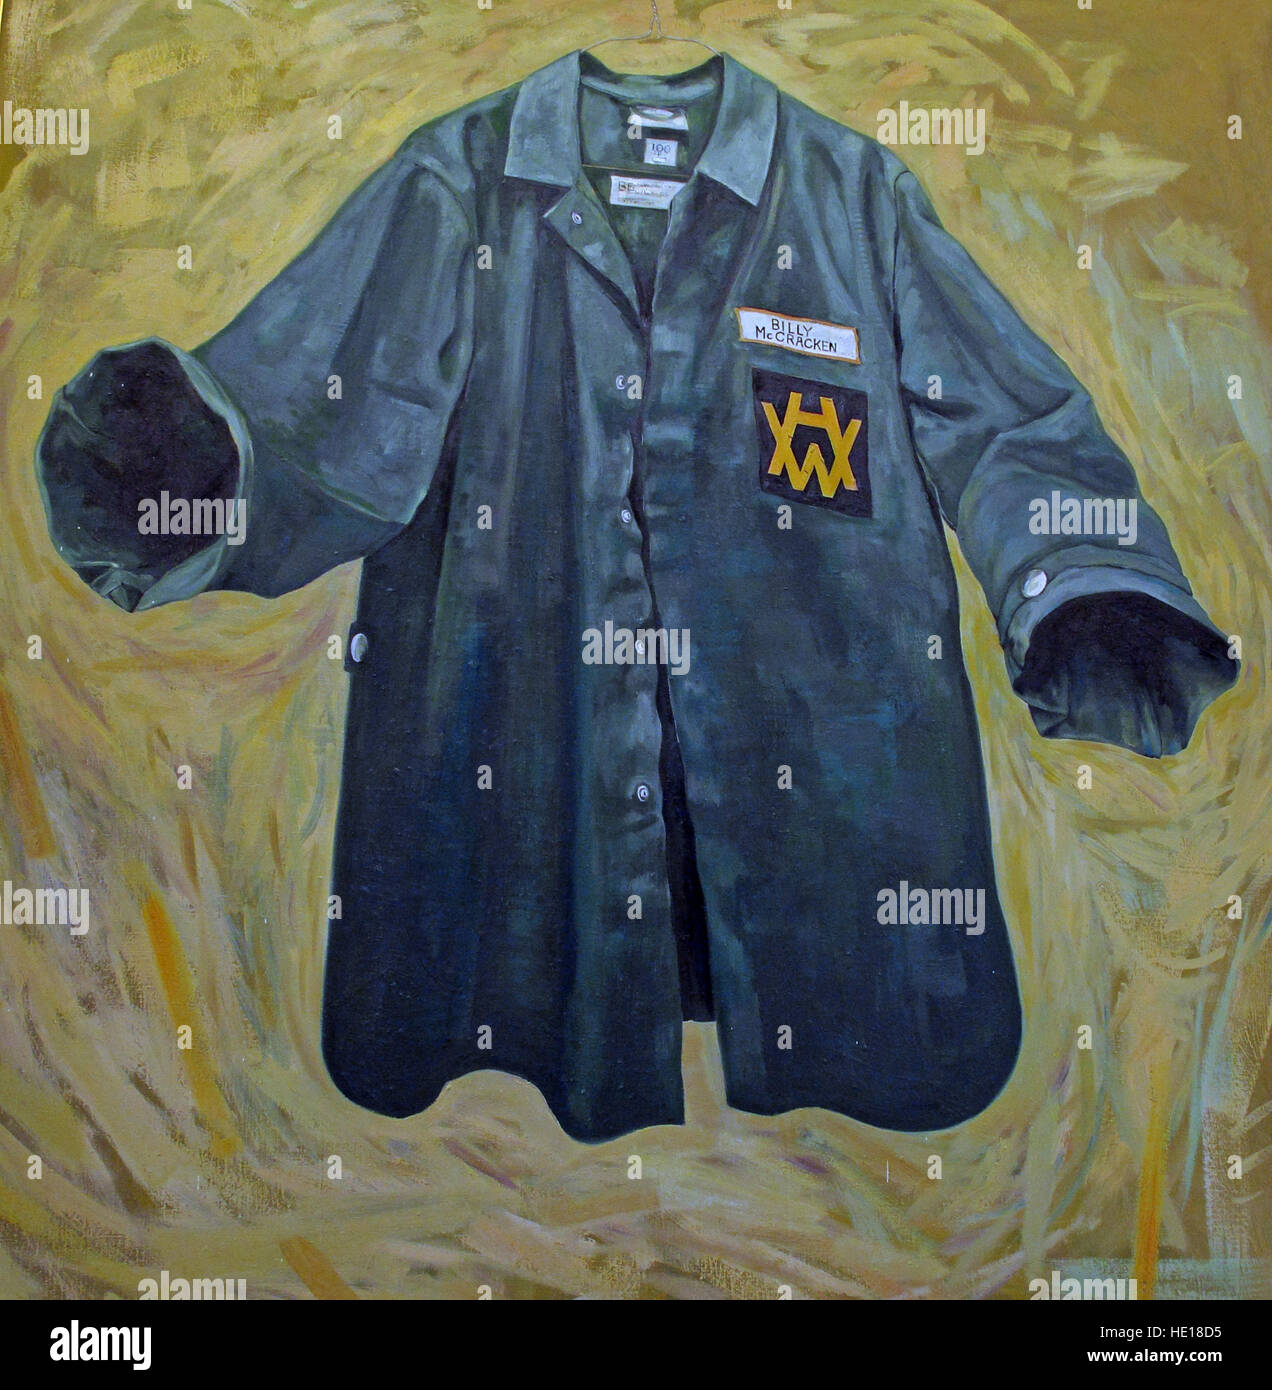 art,painting,mural,protestant,Blue,collar,blue collar,worker,manager,Harland,&,Wolff,and,blue shirt,blue,shirt,working,Billy McCracken,Marine Sales Manager,artwork,Belfast,Northern Ireland,UK,Marine,Sales,Manager,titanic,shipyard,construction,builders,builder,shipbuilder,shipbuilders,jacket,GoTonySmith,@HotpixUK,Tony,Smith,UK,GB,Great,Britain,United,Kingdom,Irish,British,Ireland,problem,with,problem with,issue with,NI,Northern,Northern Ireland,Belfast,City,Centre,Art,Artists,the,troubles,The Troubles,Good Friday Agreement,Peace,honour,painting,wall,walls,tribute,republicanism,Fight,Justice,West,Beal,feirste,martyrs,social,tour,tourism,tourists,urban,six,counties,6,backdrop,county,Antrim,Buy Pictures of,Buy Images Of,Images of,Stock Images,Tony Smith,United Kingdom,Great Britain,British Isles,Irish History,Ireland History,Northern Ireland History